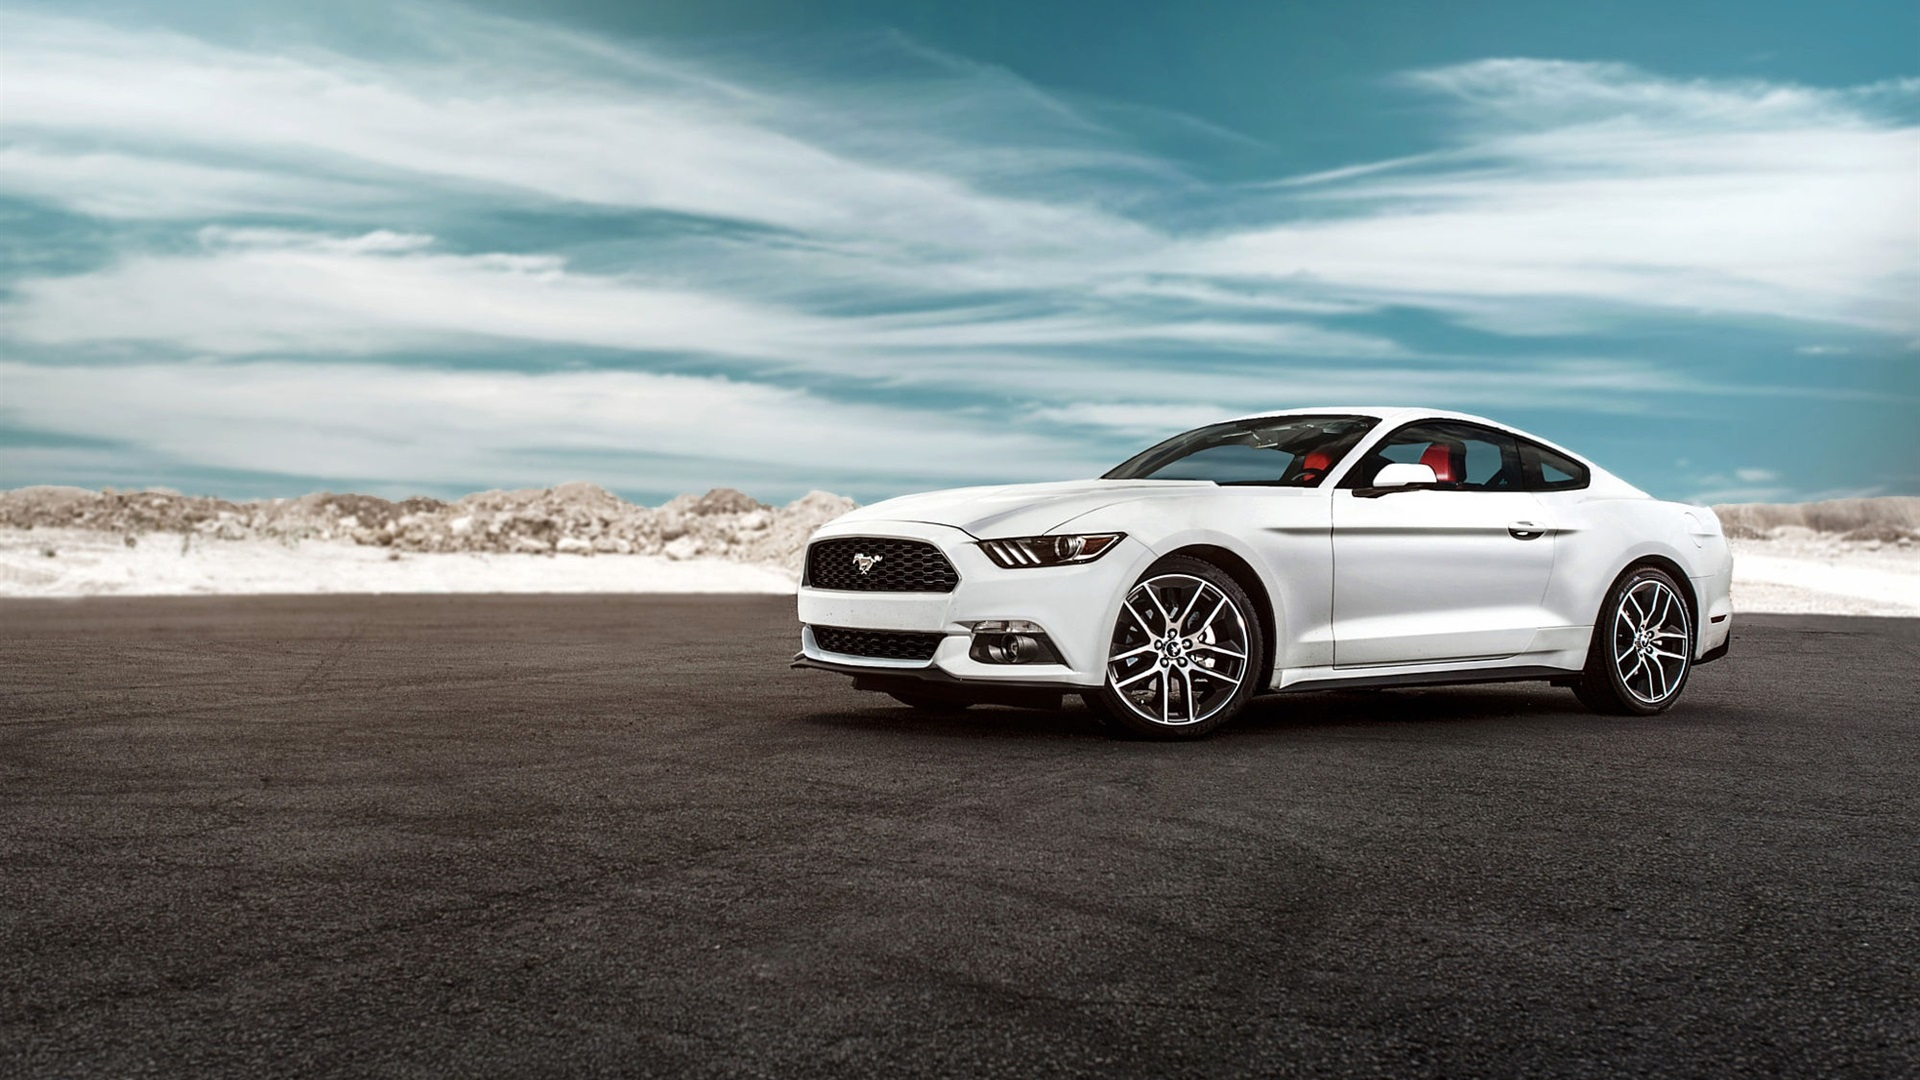 2015 Ford Mustang Gt White Car Wallpaper 1920x1080 Full Hd Resolution Wallpaper Download